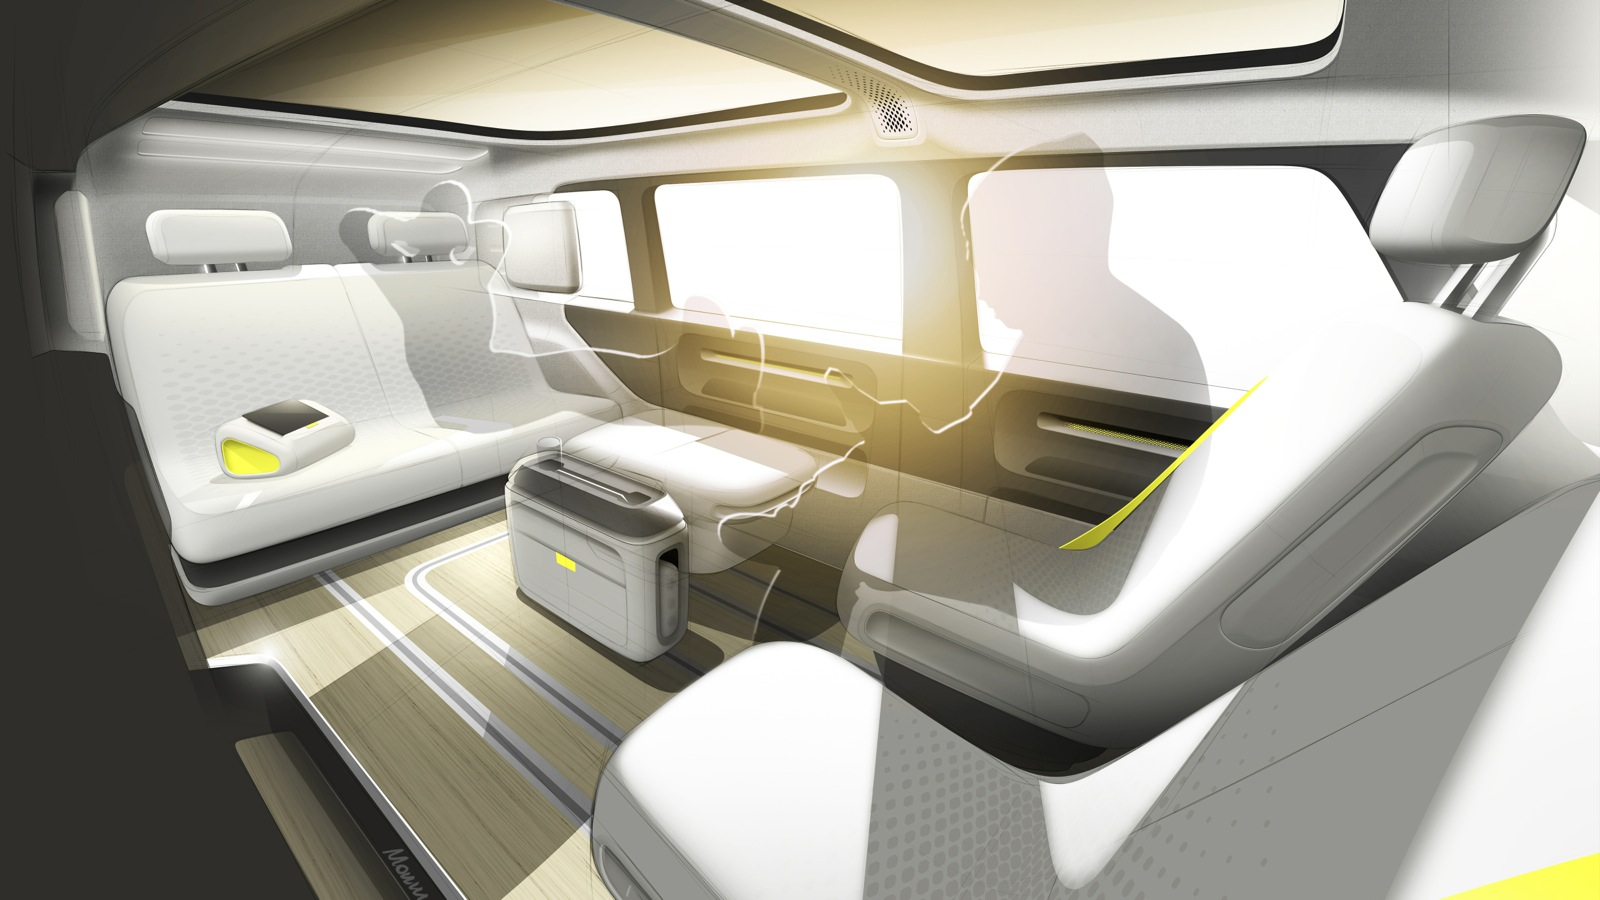 Volkswagen I.D. Buzz concept revealed - Photos (1 of 45)